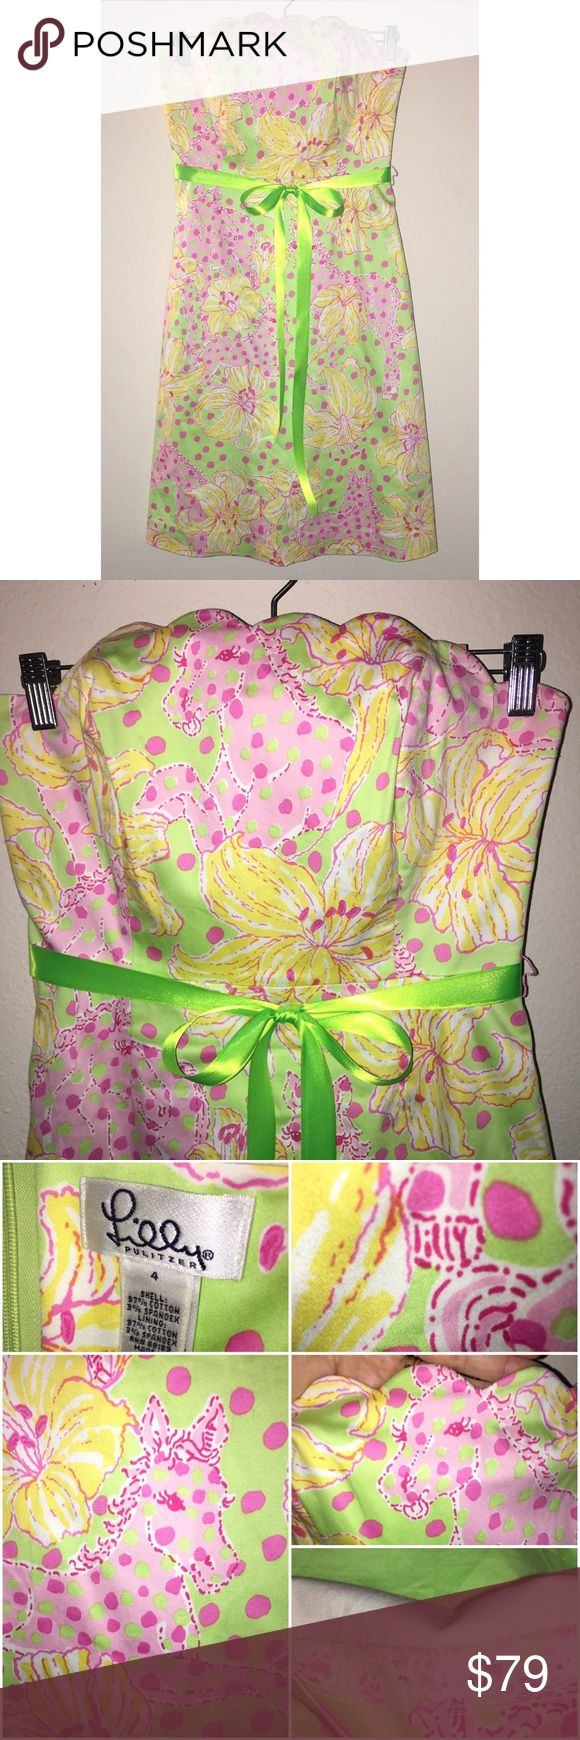 12 best lilly pulitzer horse prints images on pinterest lilly lilly pulitzer fillies for lillies derby dress 4